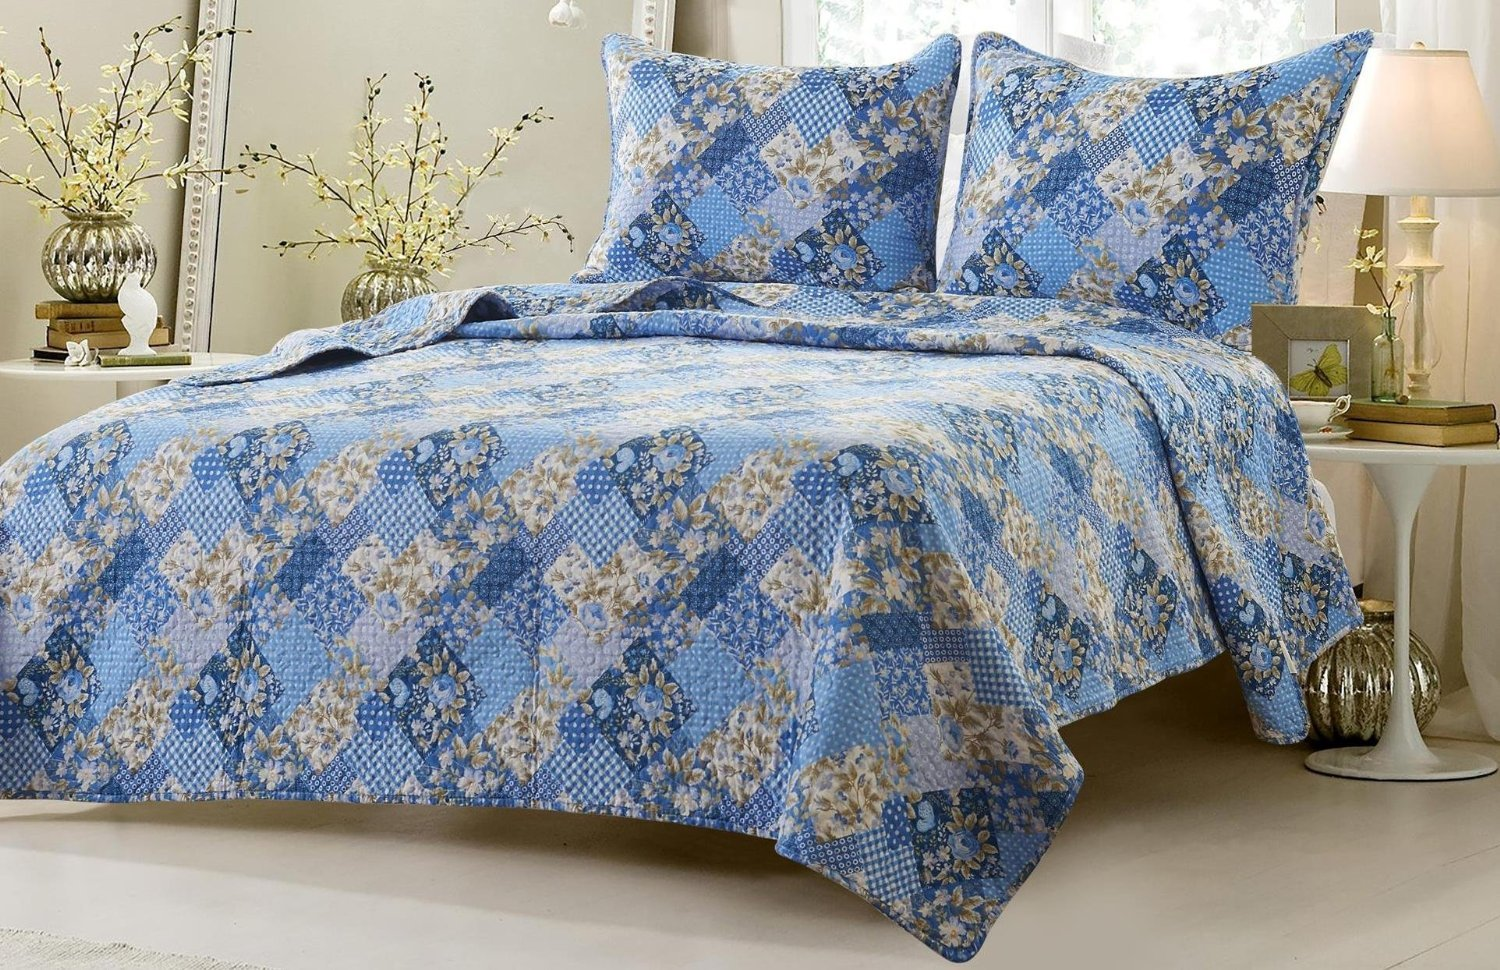 3pc Floral Blue Patchwork Quilt Set - Style # 1048 - Full/Queen - Cherry Hill Collection